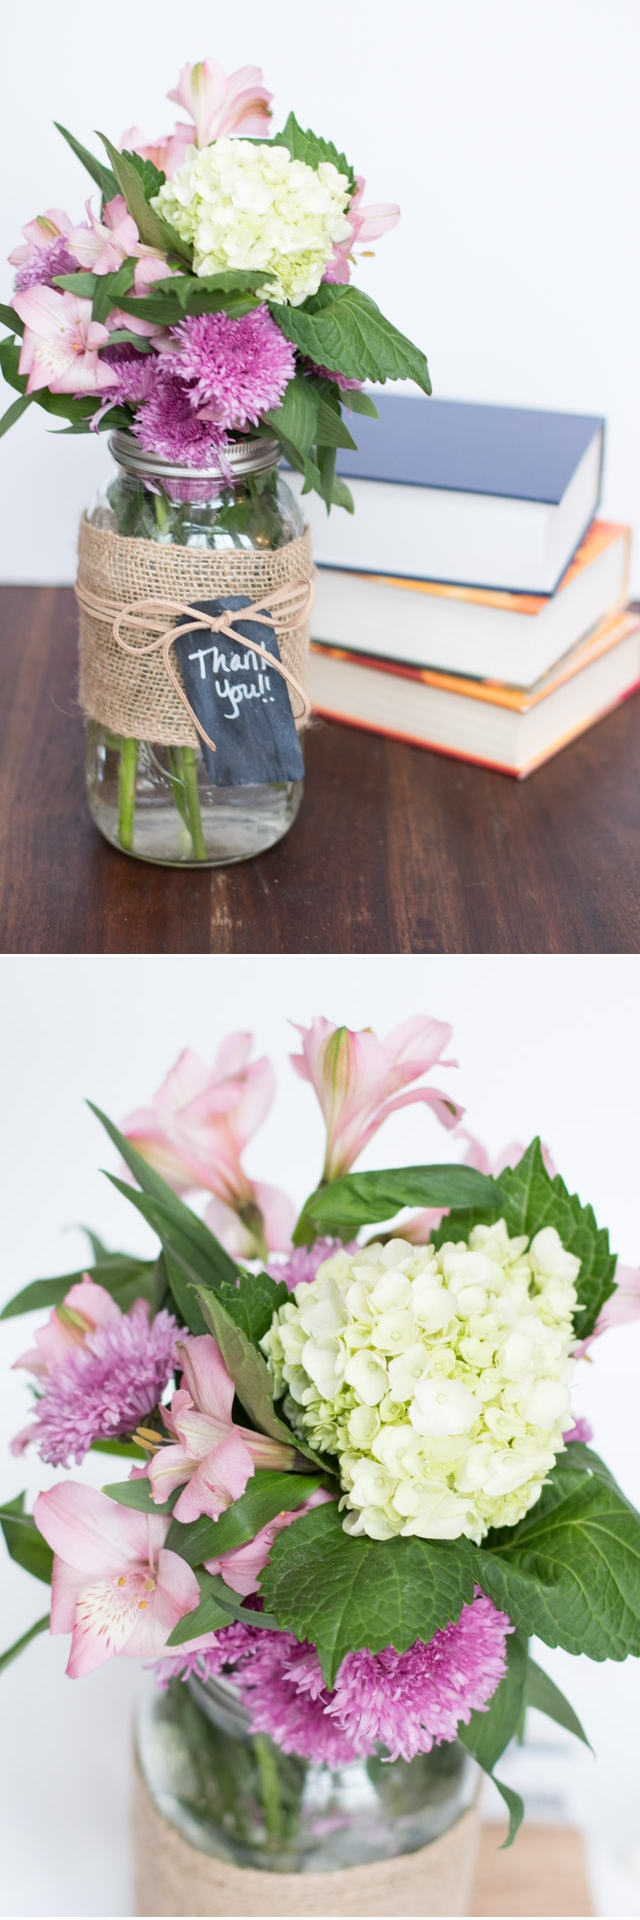 tacl2 Teacher-Appreciation-Floral-Arrangement